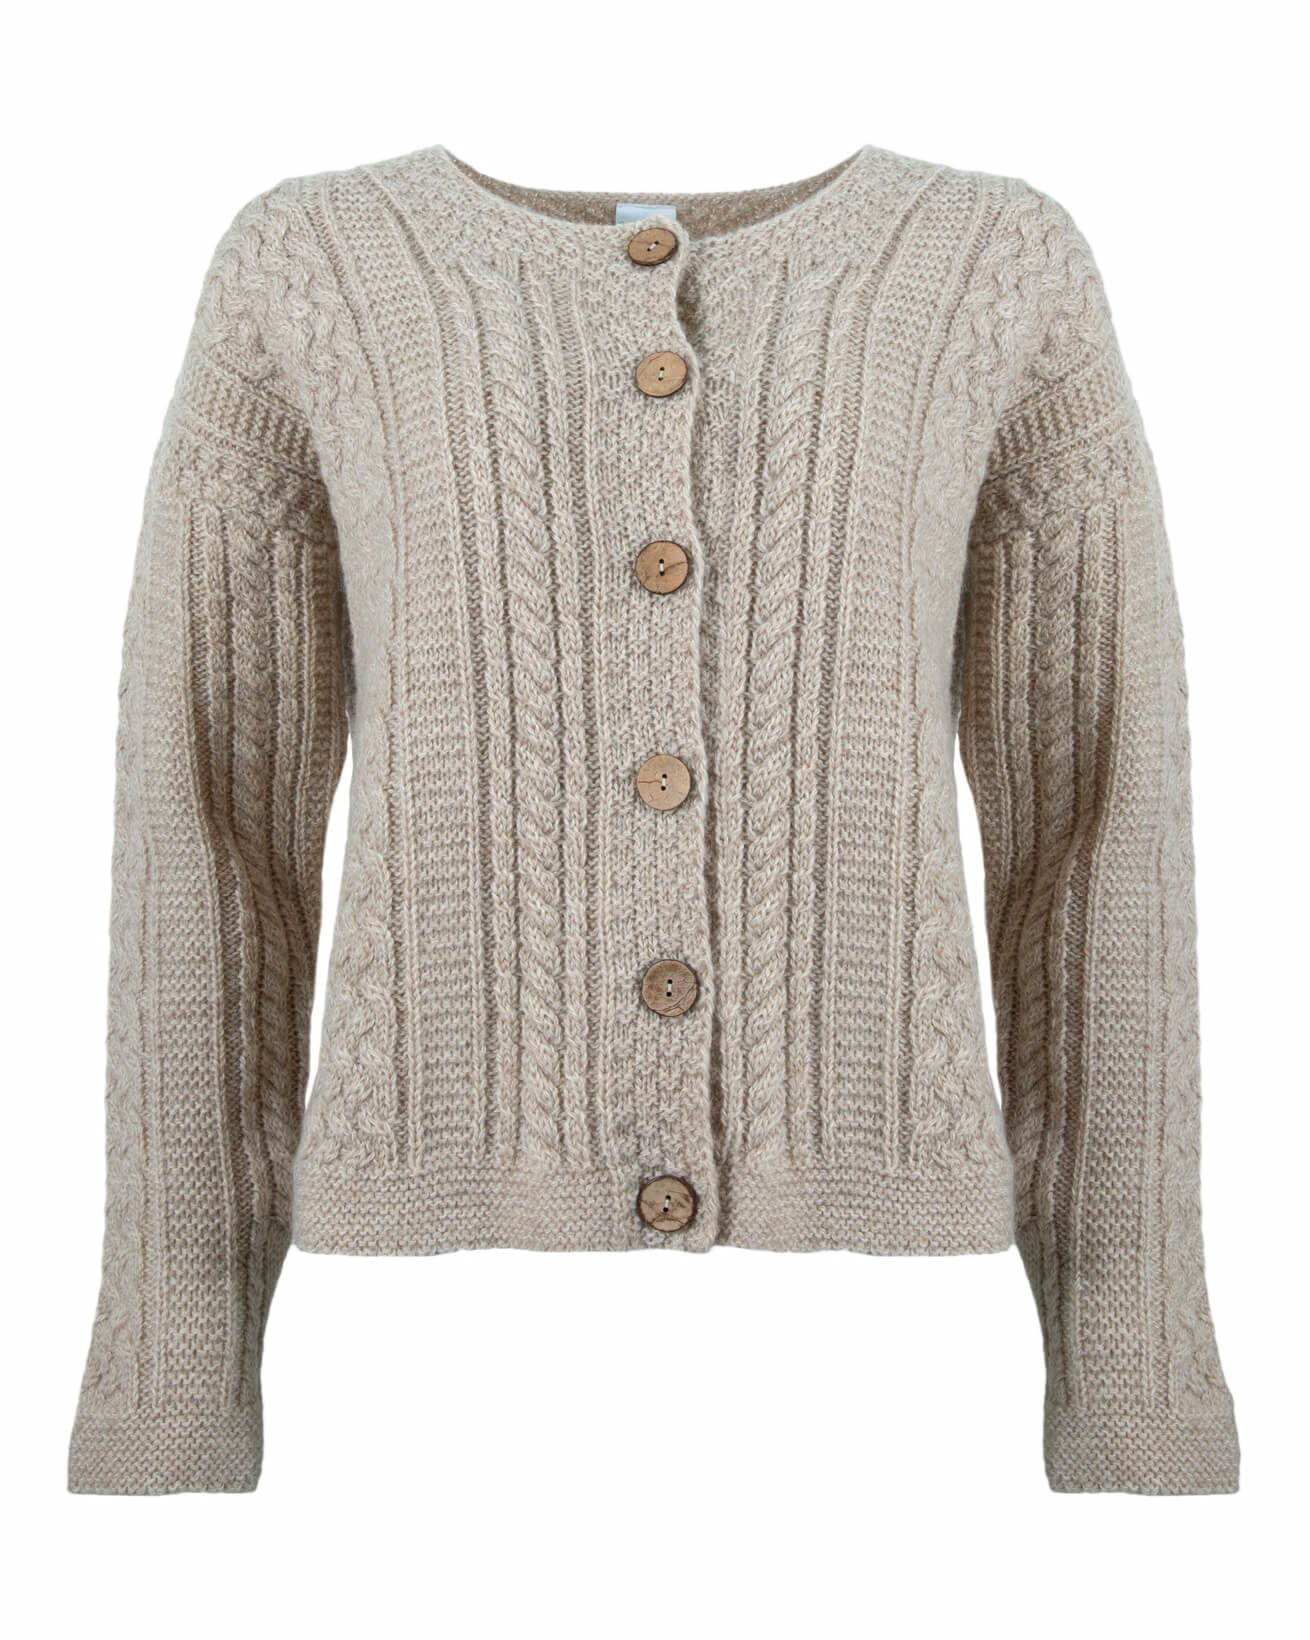 7237_cable-cardi_oatmeal_front_comp.jpg